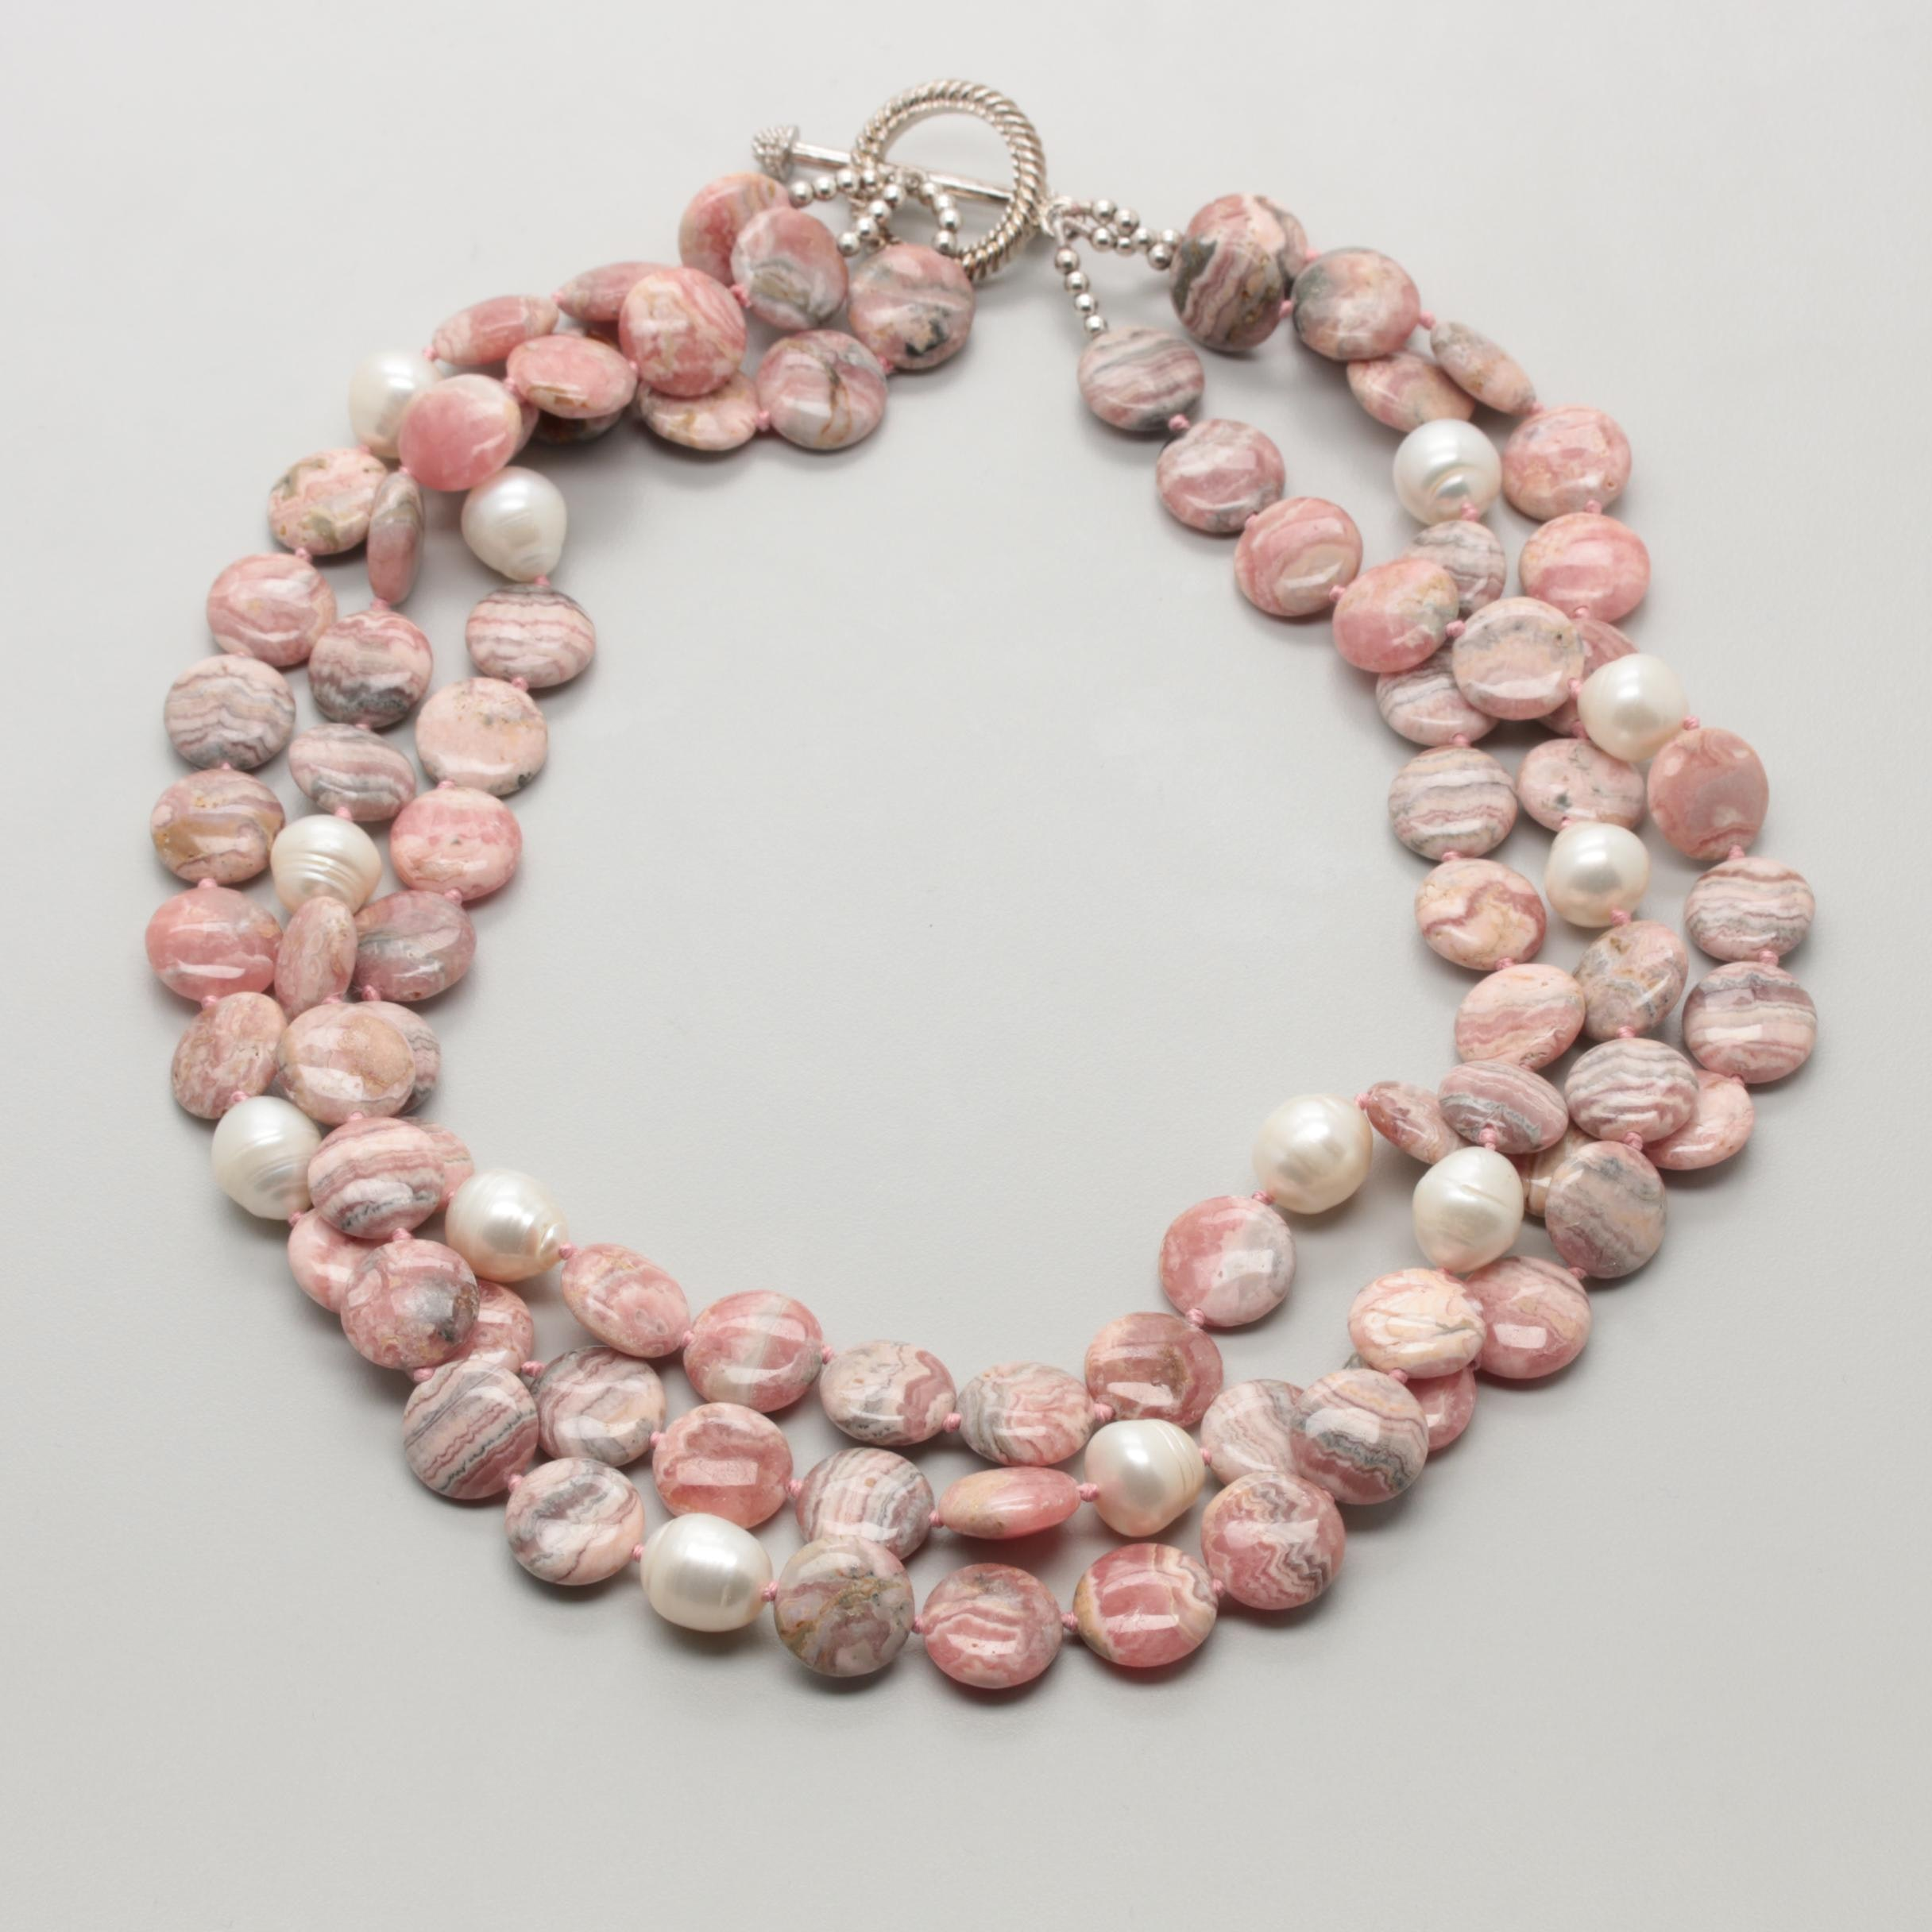 Silver Tone Three Strand Rhodochrosite and Cultured Pearl Necklace